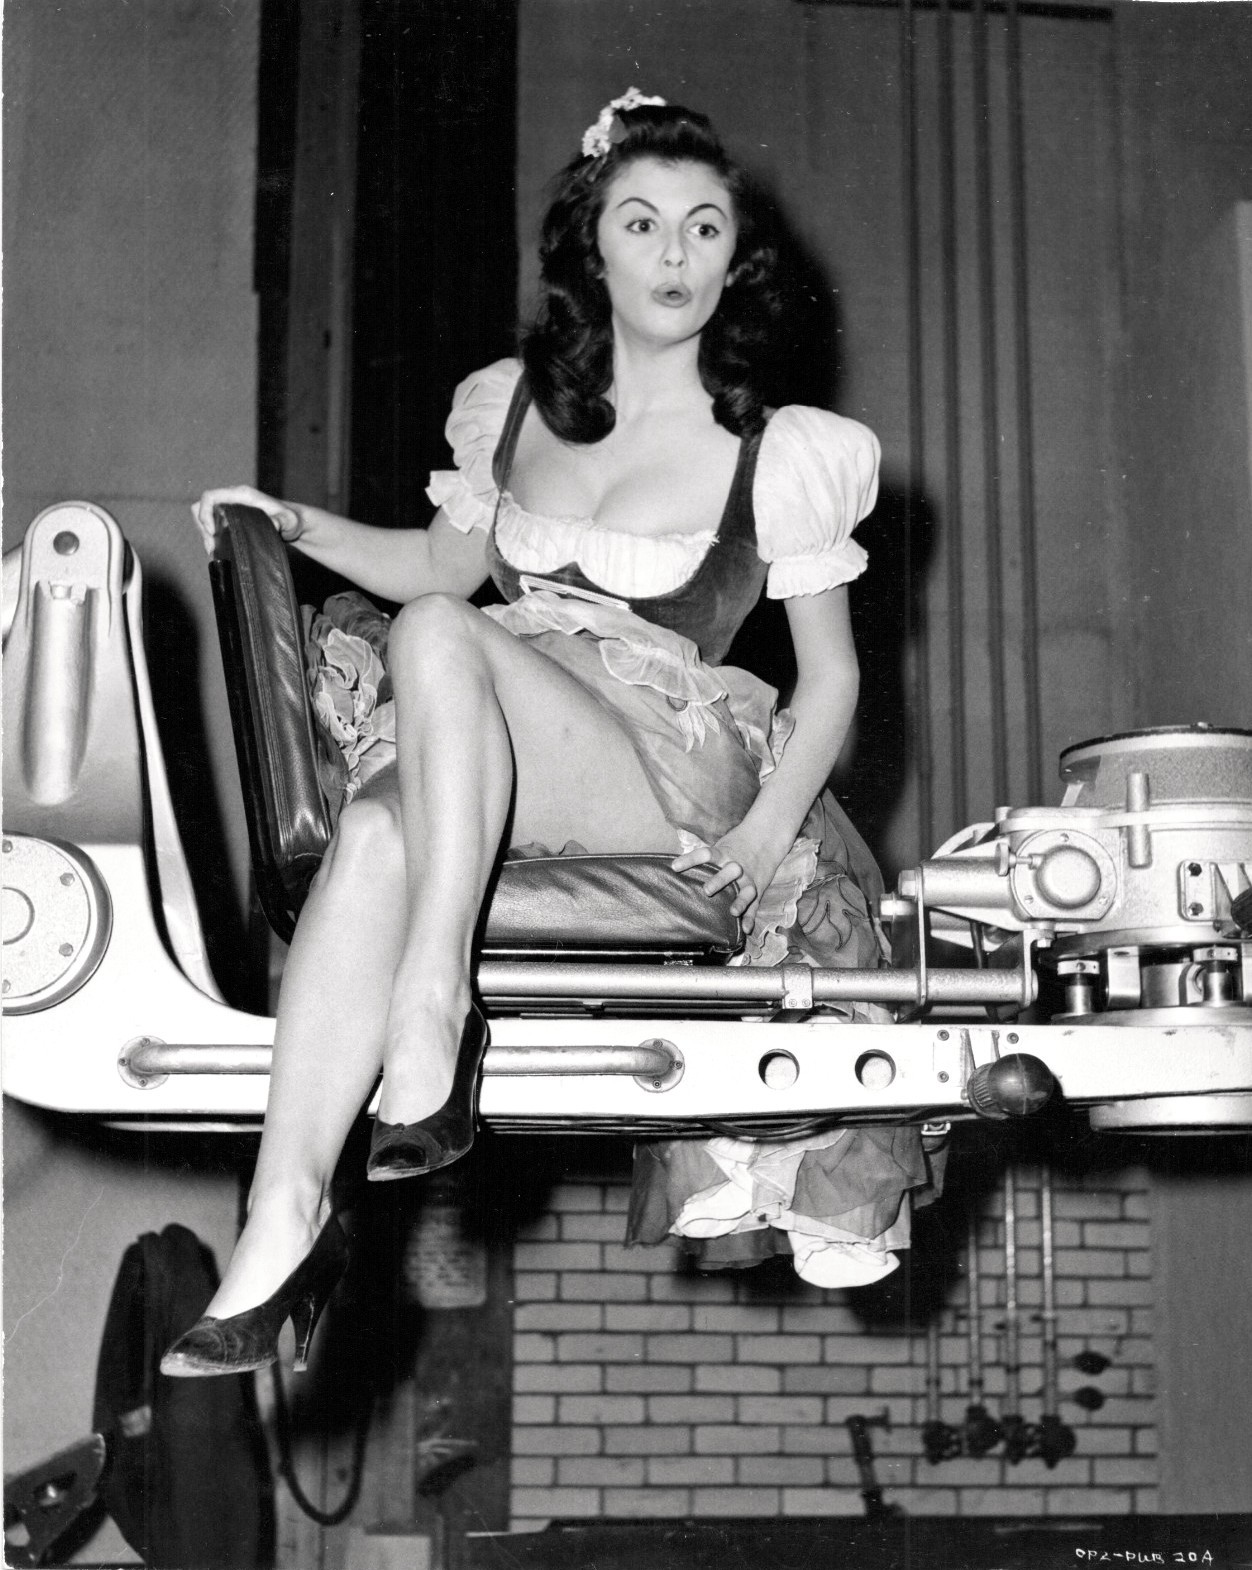 jeanjeanie61: Eve Eden On The Set Of 'The Mouse That Roared' - 1959